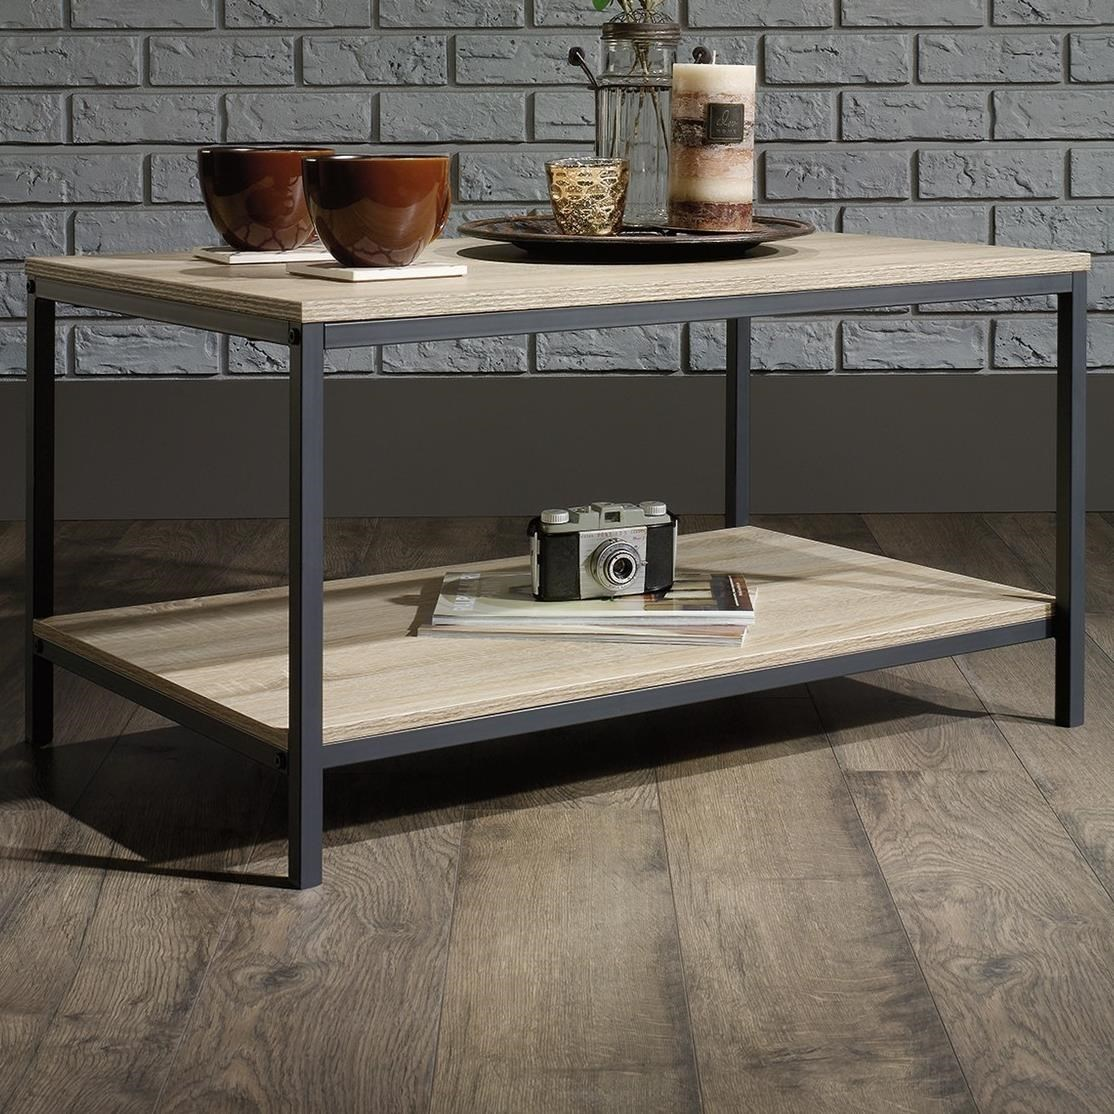 Sauder North AvenueCoffee Table ...